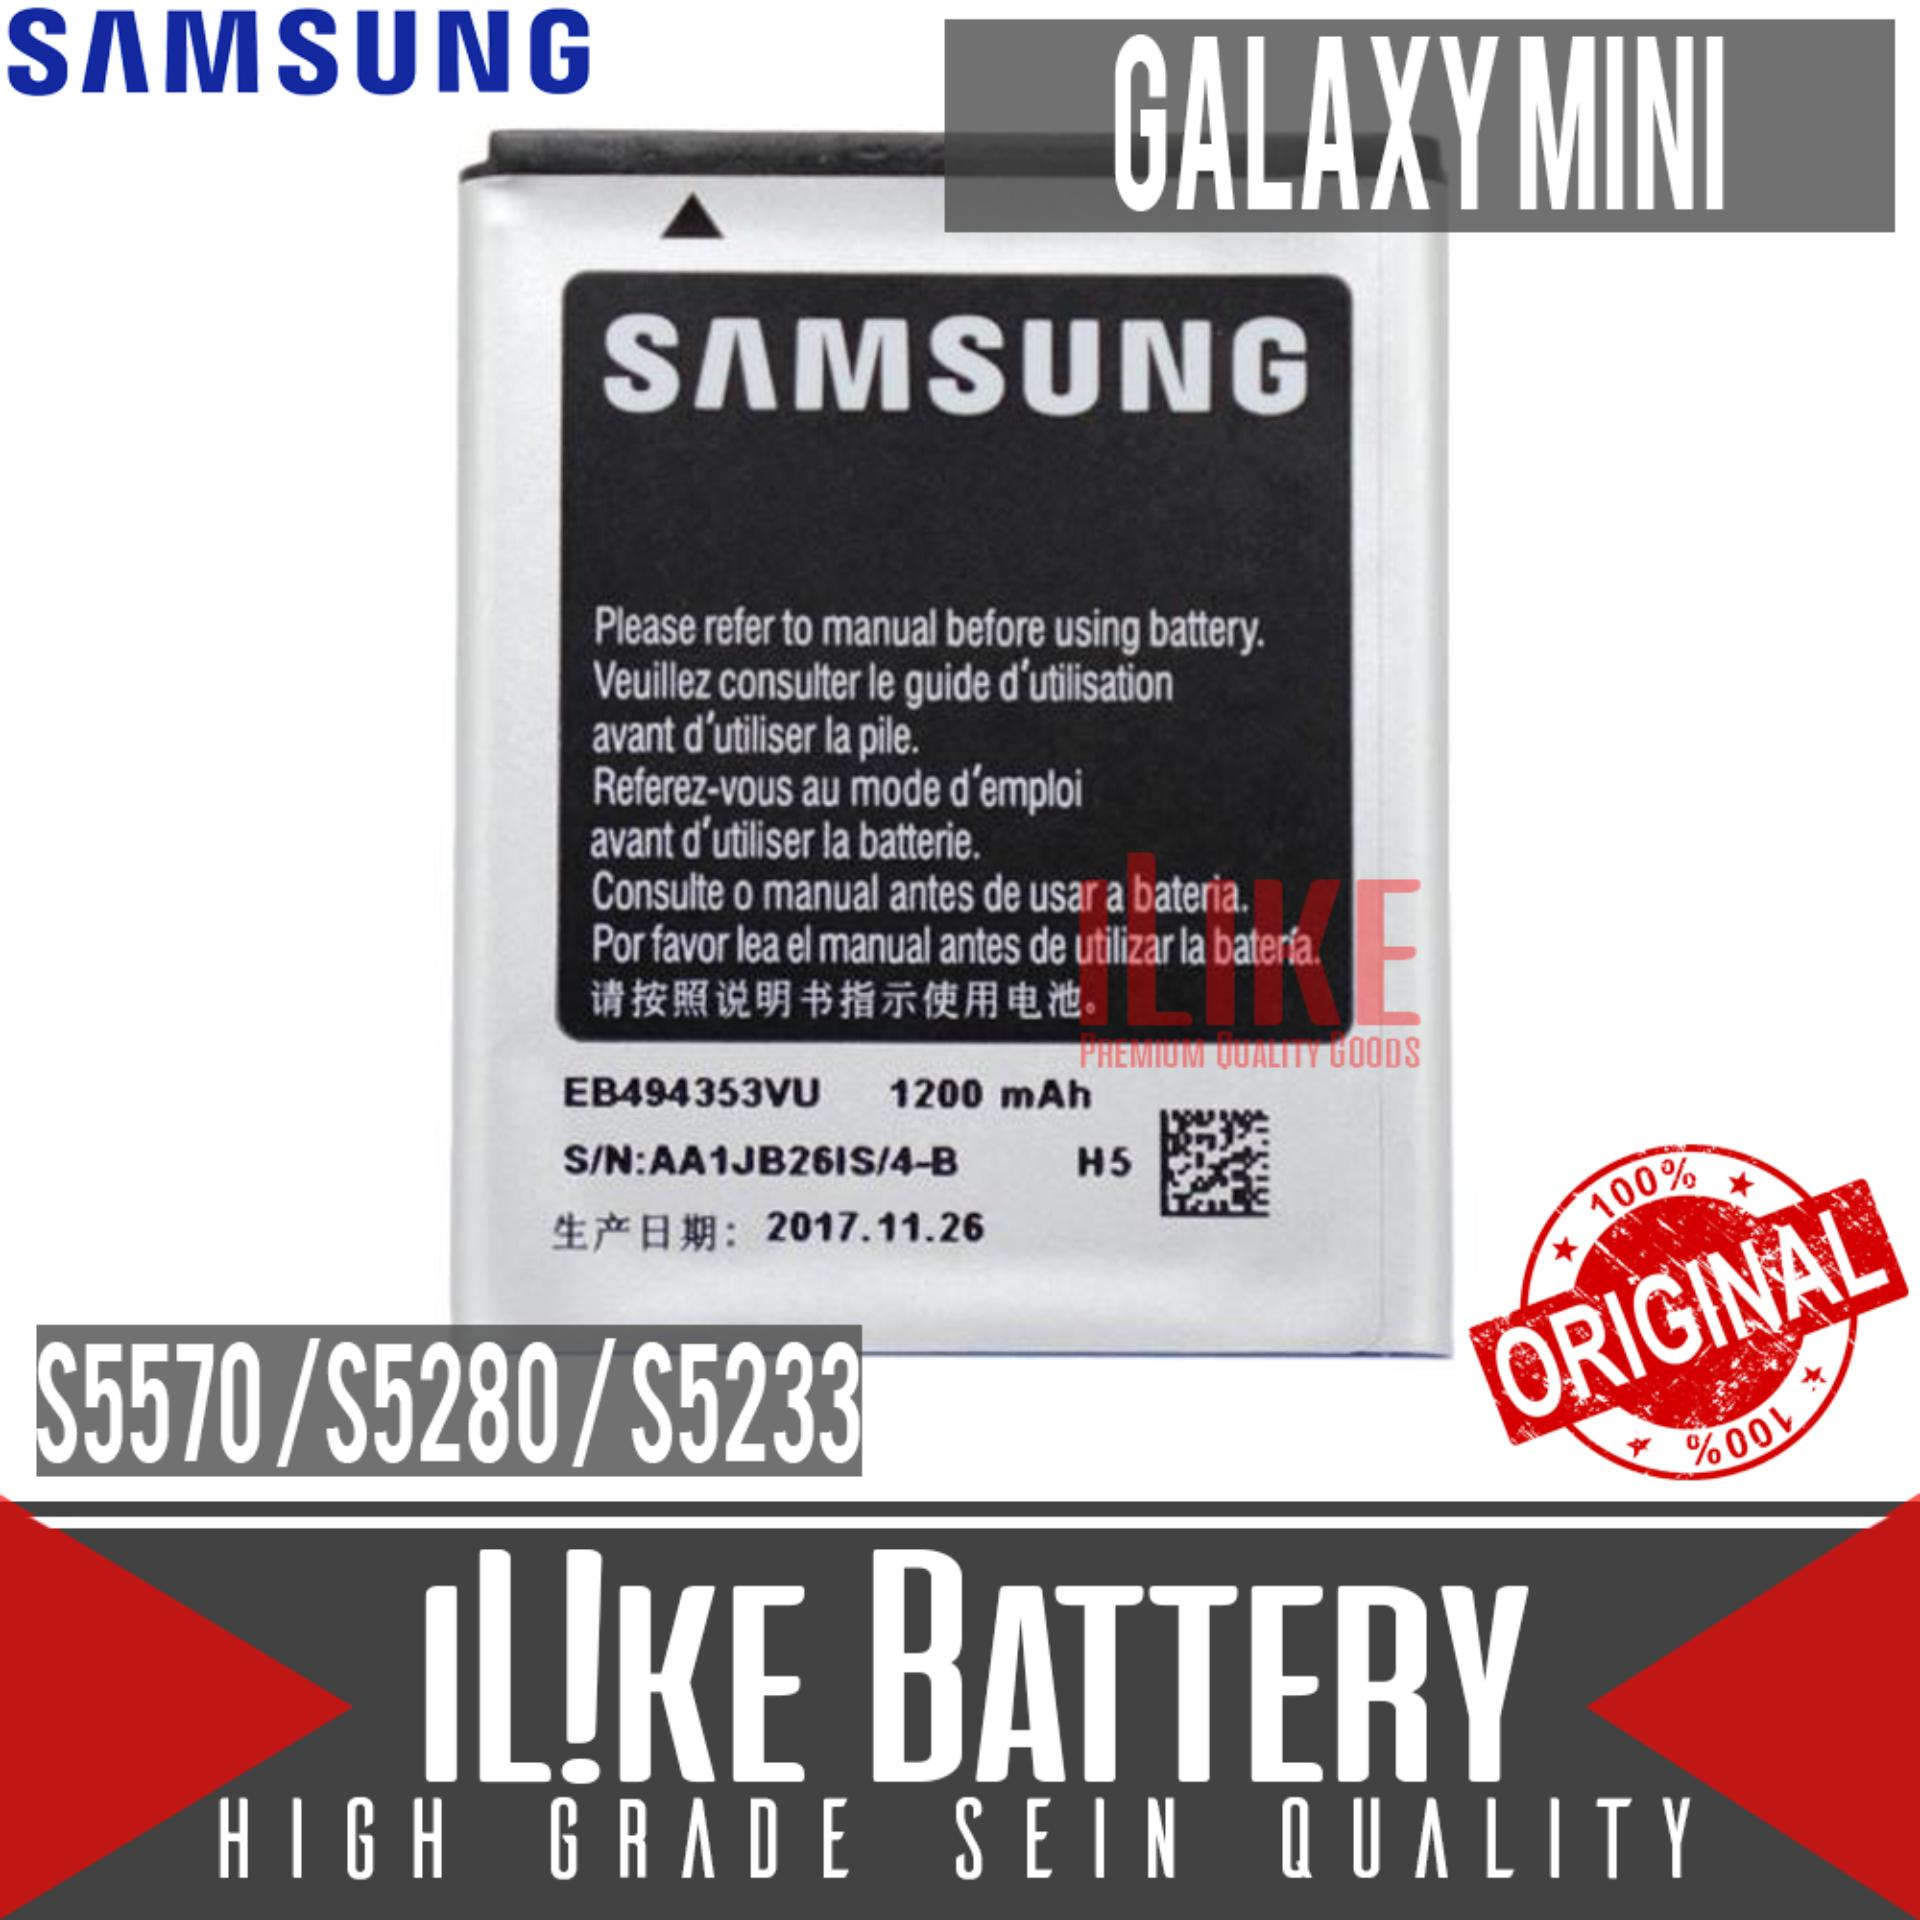 Buy Sell Cheapest Battery Premium Quality Best Product Hippo Baterai Iphone 6 1810 Mah Original Cell Ilike Samsung Galaxy Mini S5570 Star S5280 Young Neo S5233 High